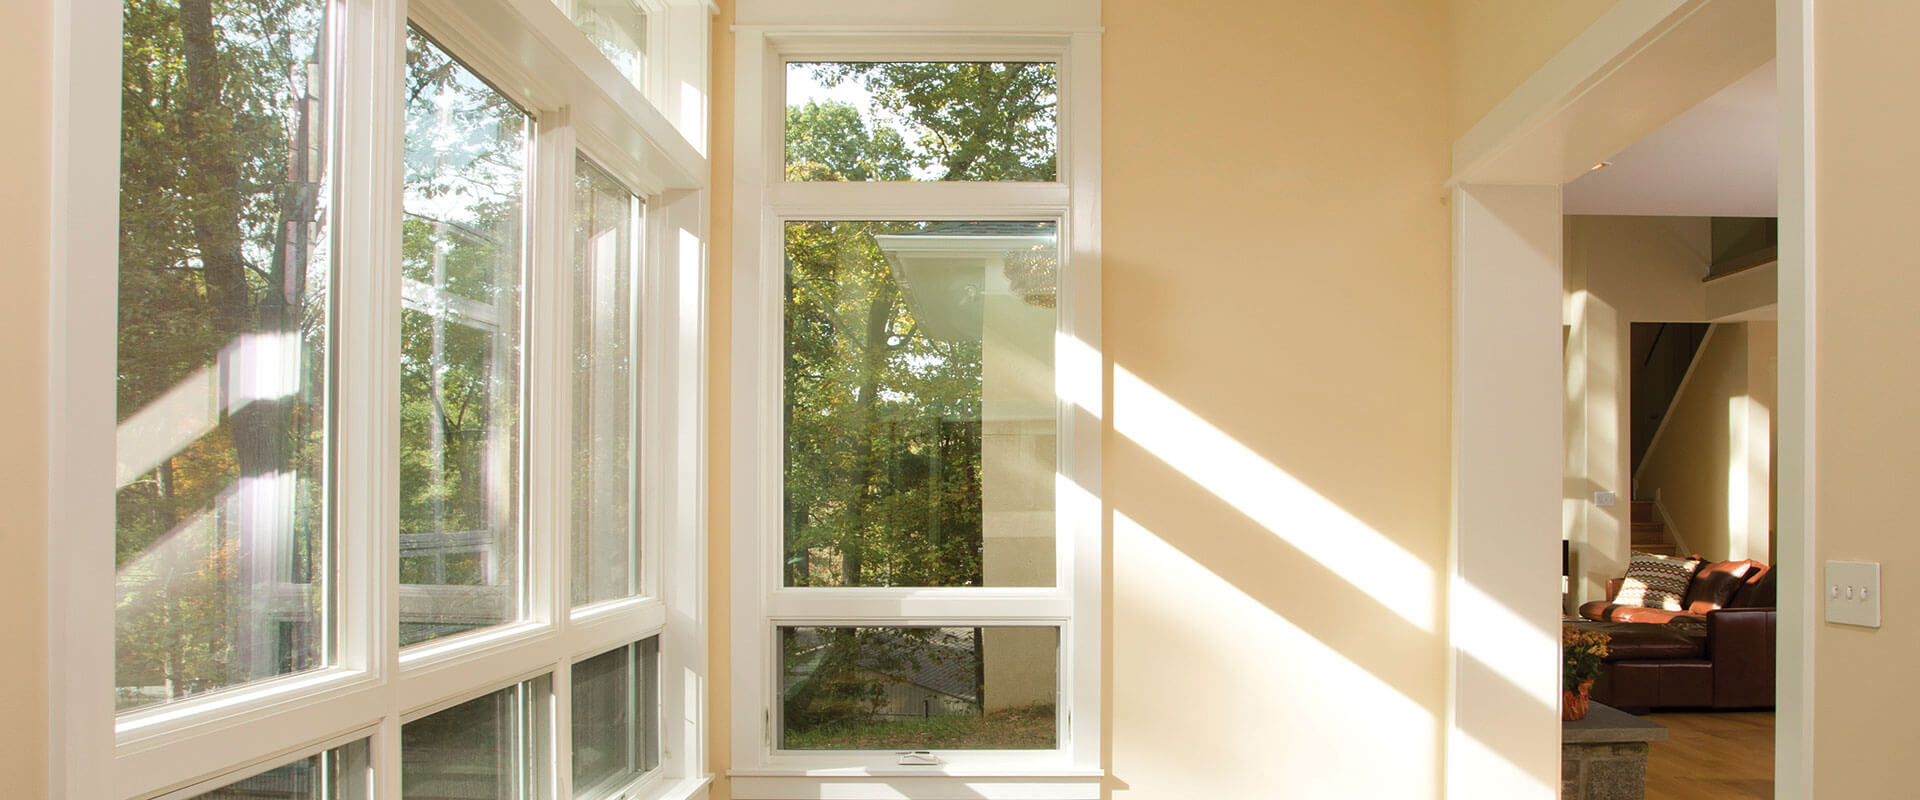 French casement windows photos houzz - Forgent Series Casements Ab402